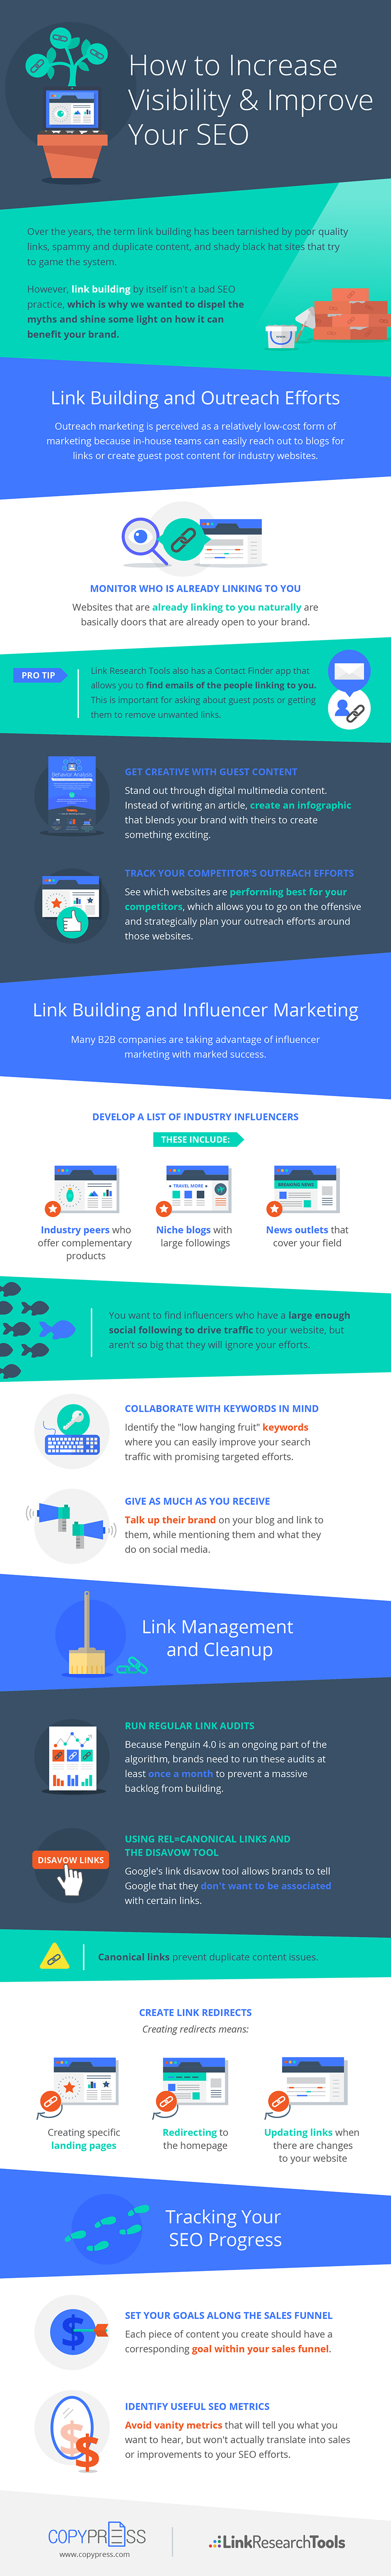 How to Increase visibility and improve SEO